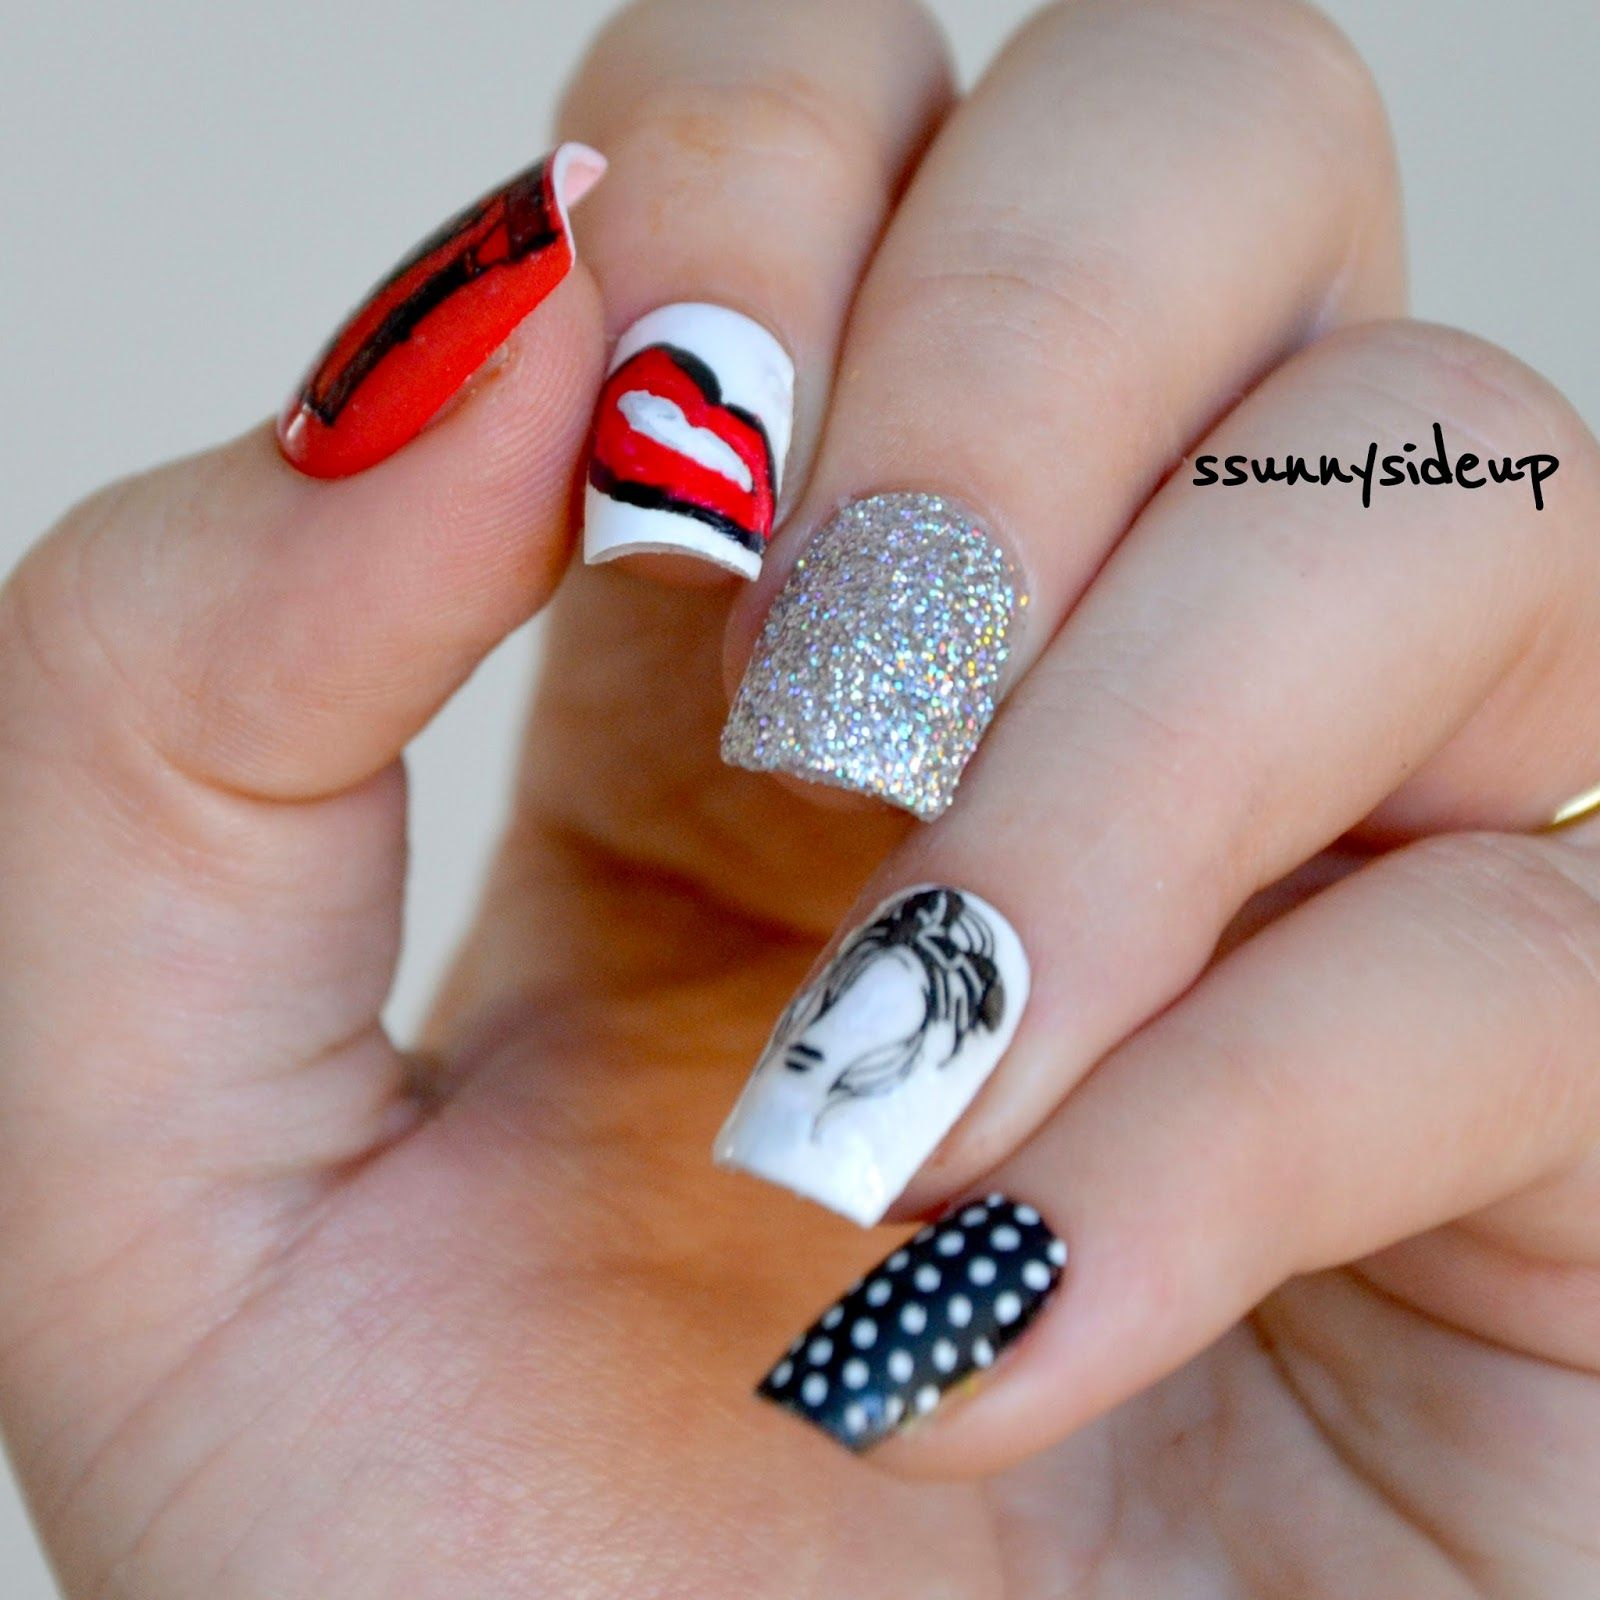 ssunnysideup: Rockabilly nails done with three different moyou ...